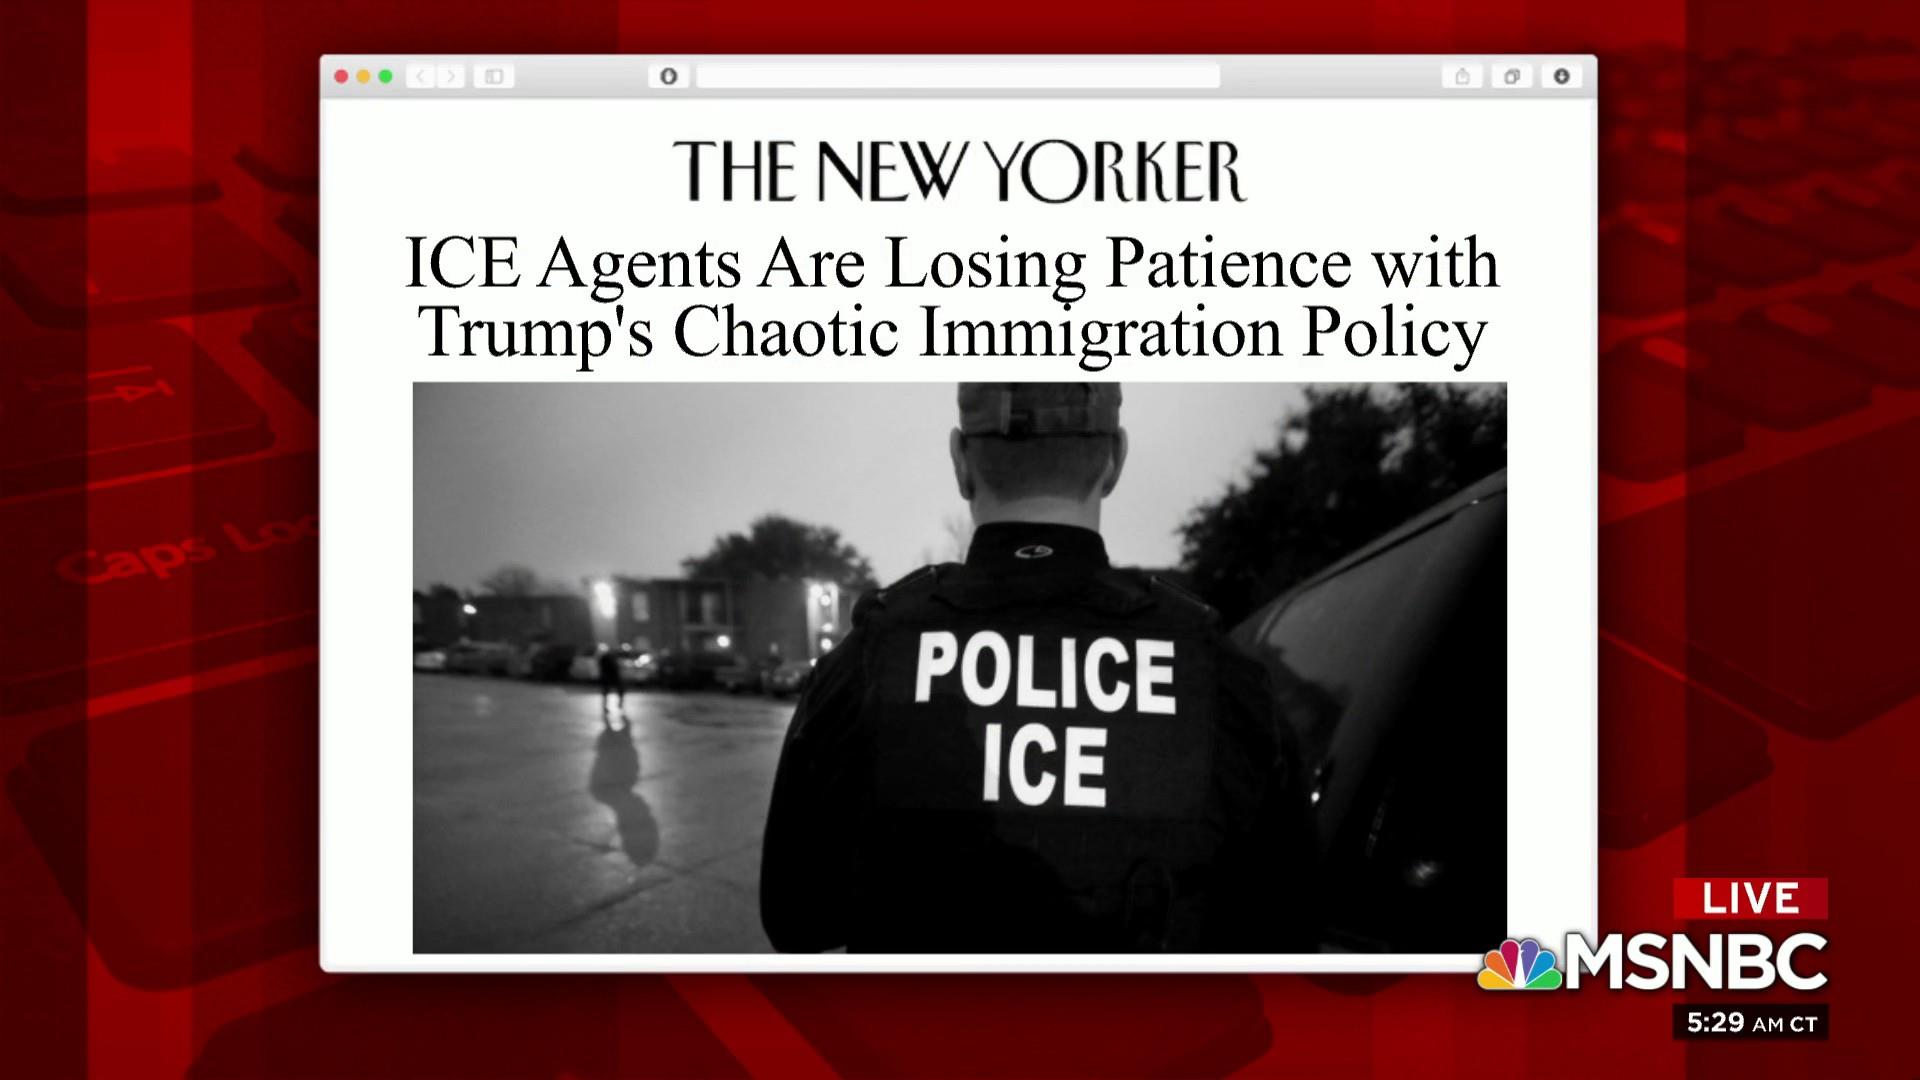 ICE agents lose patience with immigration policy